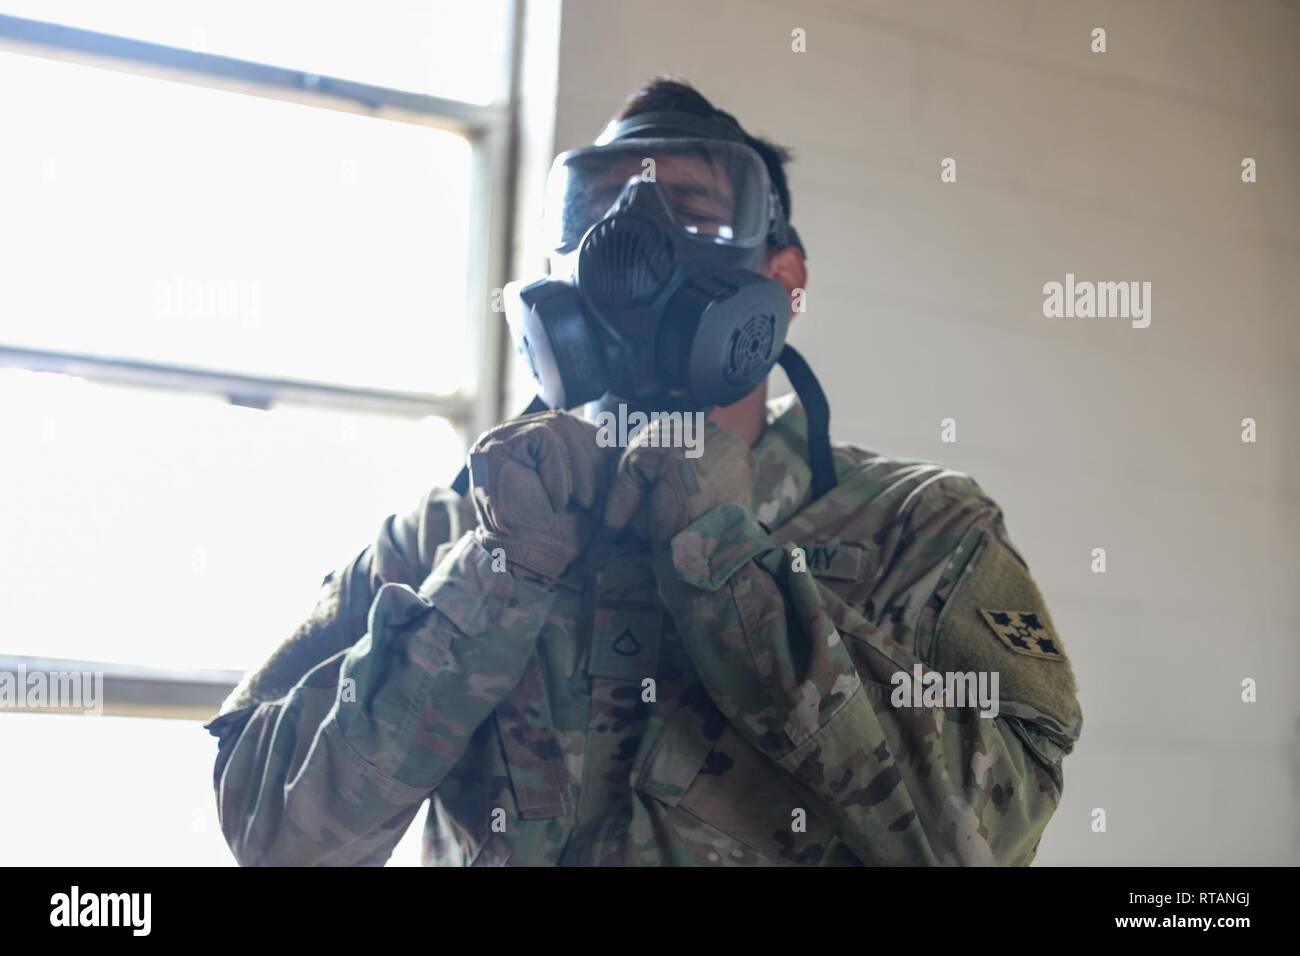 A Soldier assigned to the 2nd Infantry Brigade Combat Team